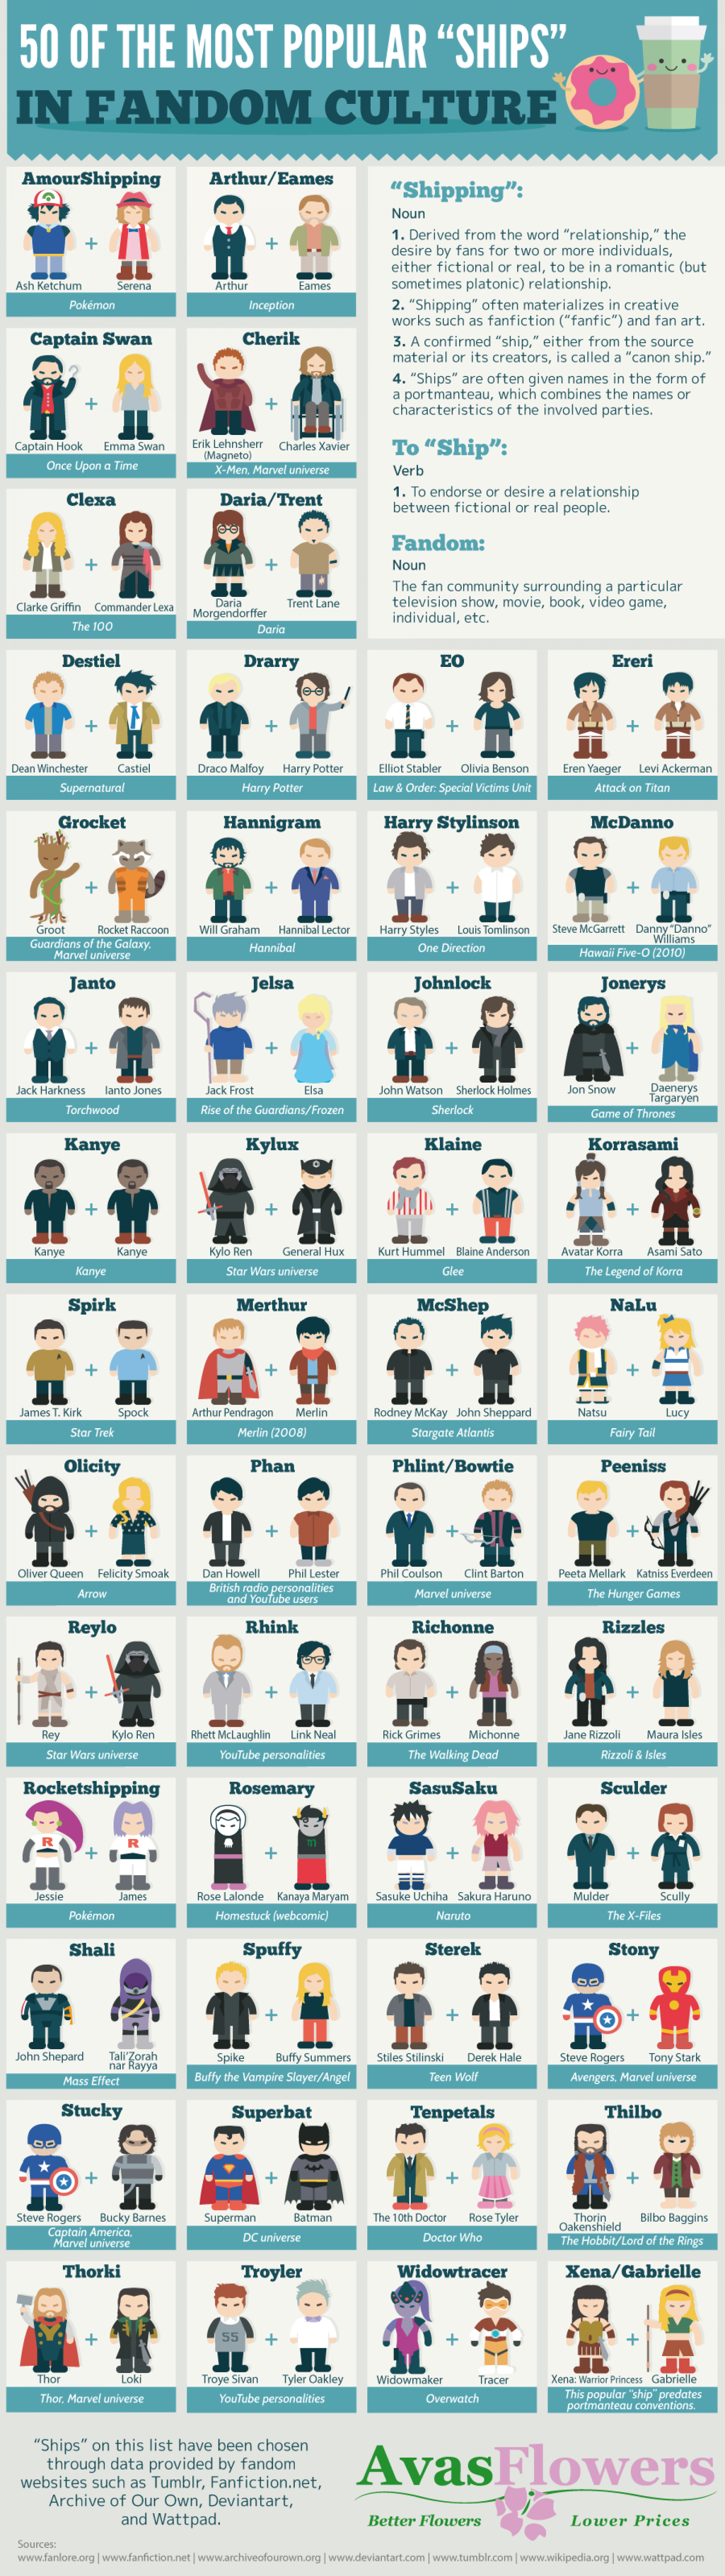 """50 of the Most Popular """"Ships"""" in Fandom Culture Infographic"""